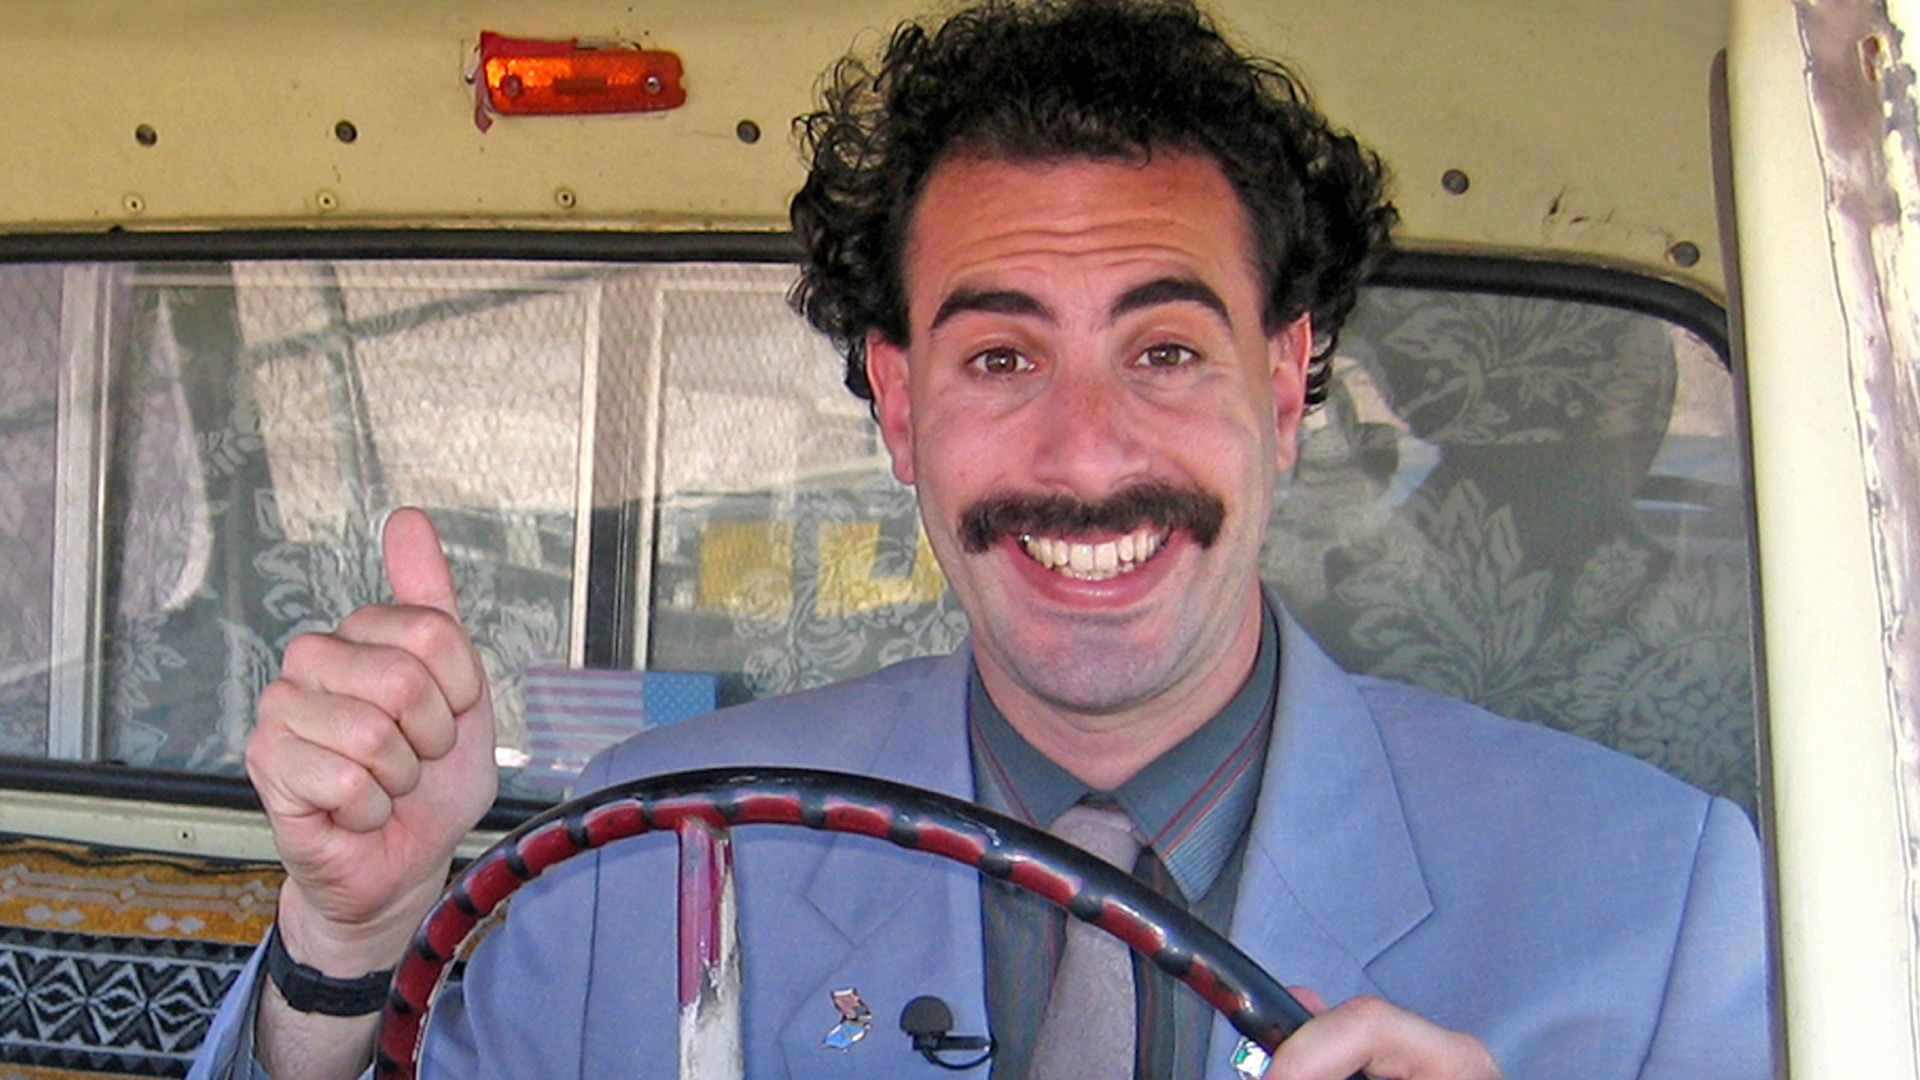 The title to Sacha Baron Cohen's Borat sequel is absolutely glorious